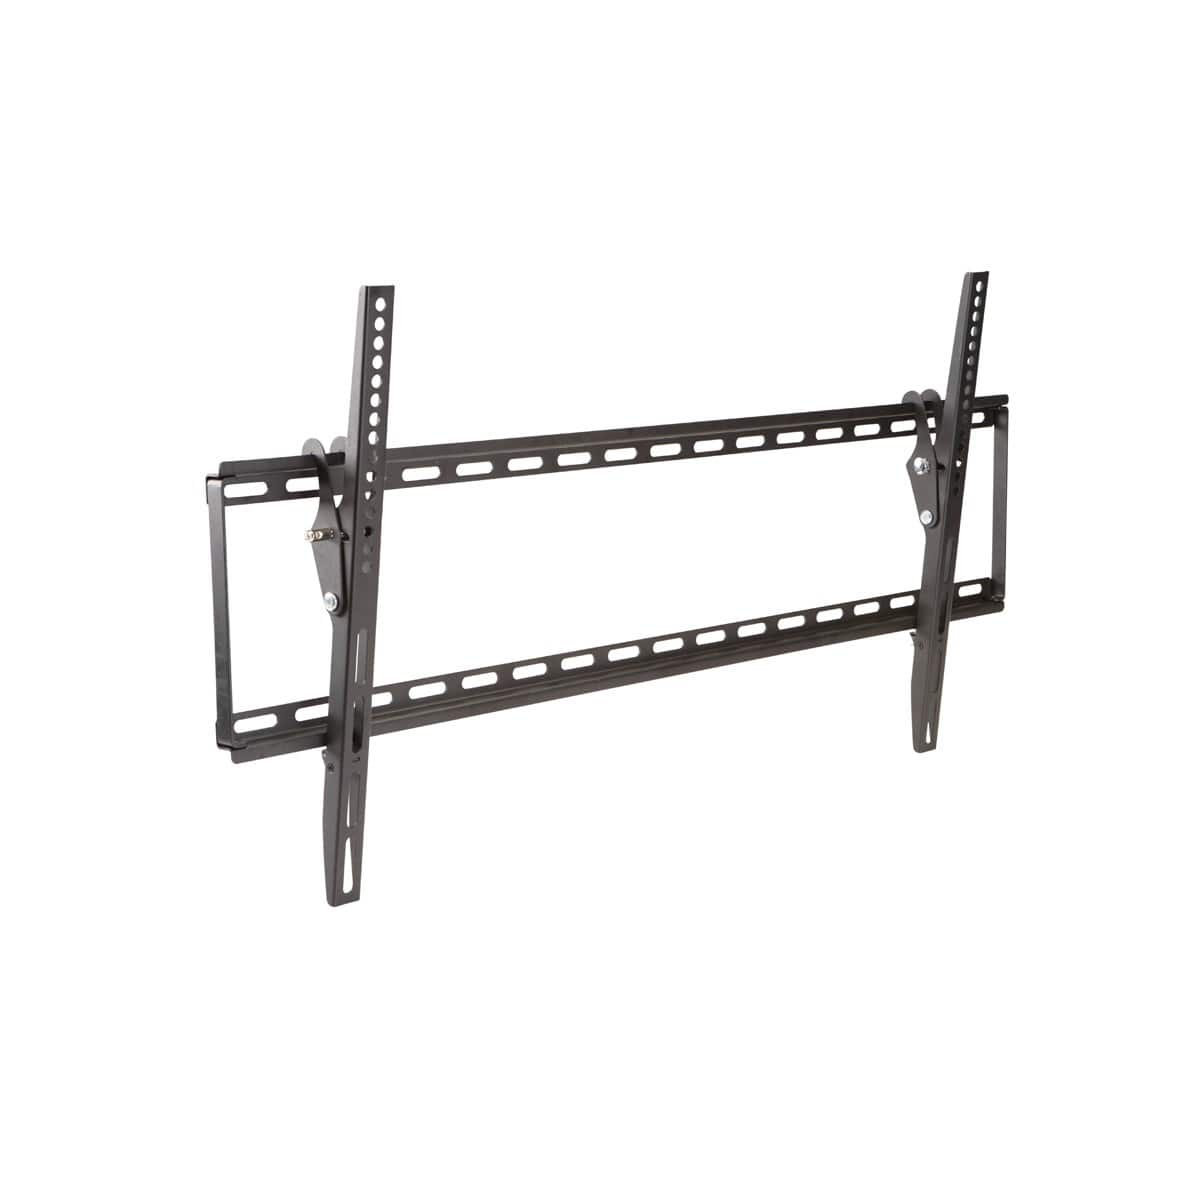 Large Tilt Flat Panel TV Mount for $14.99 on Harbor